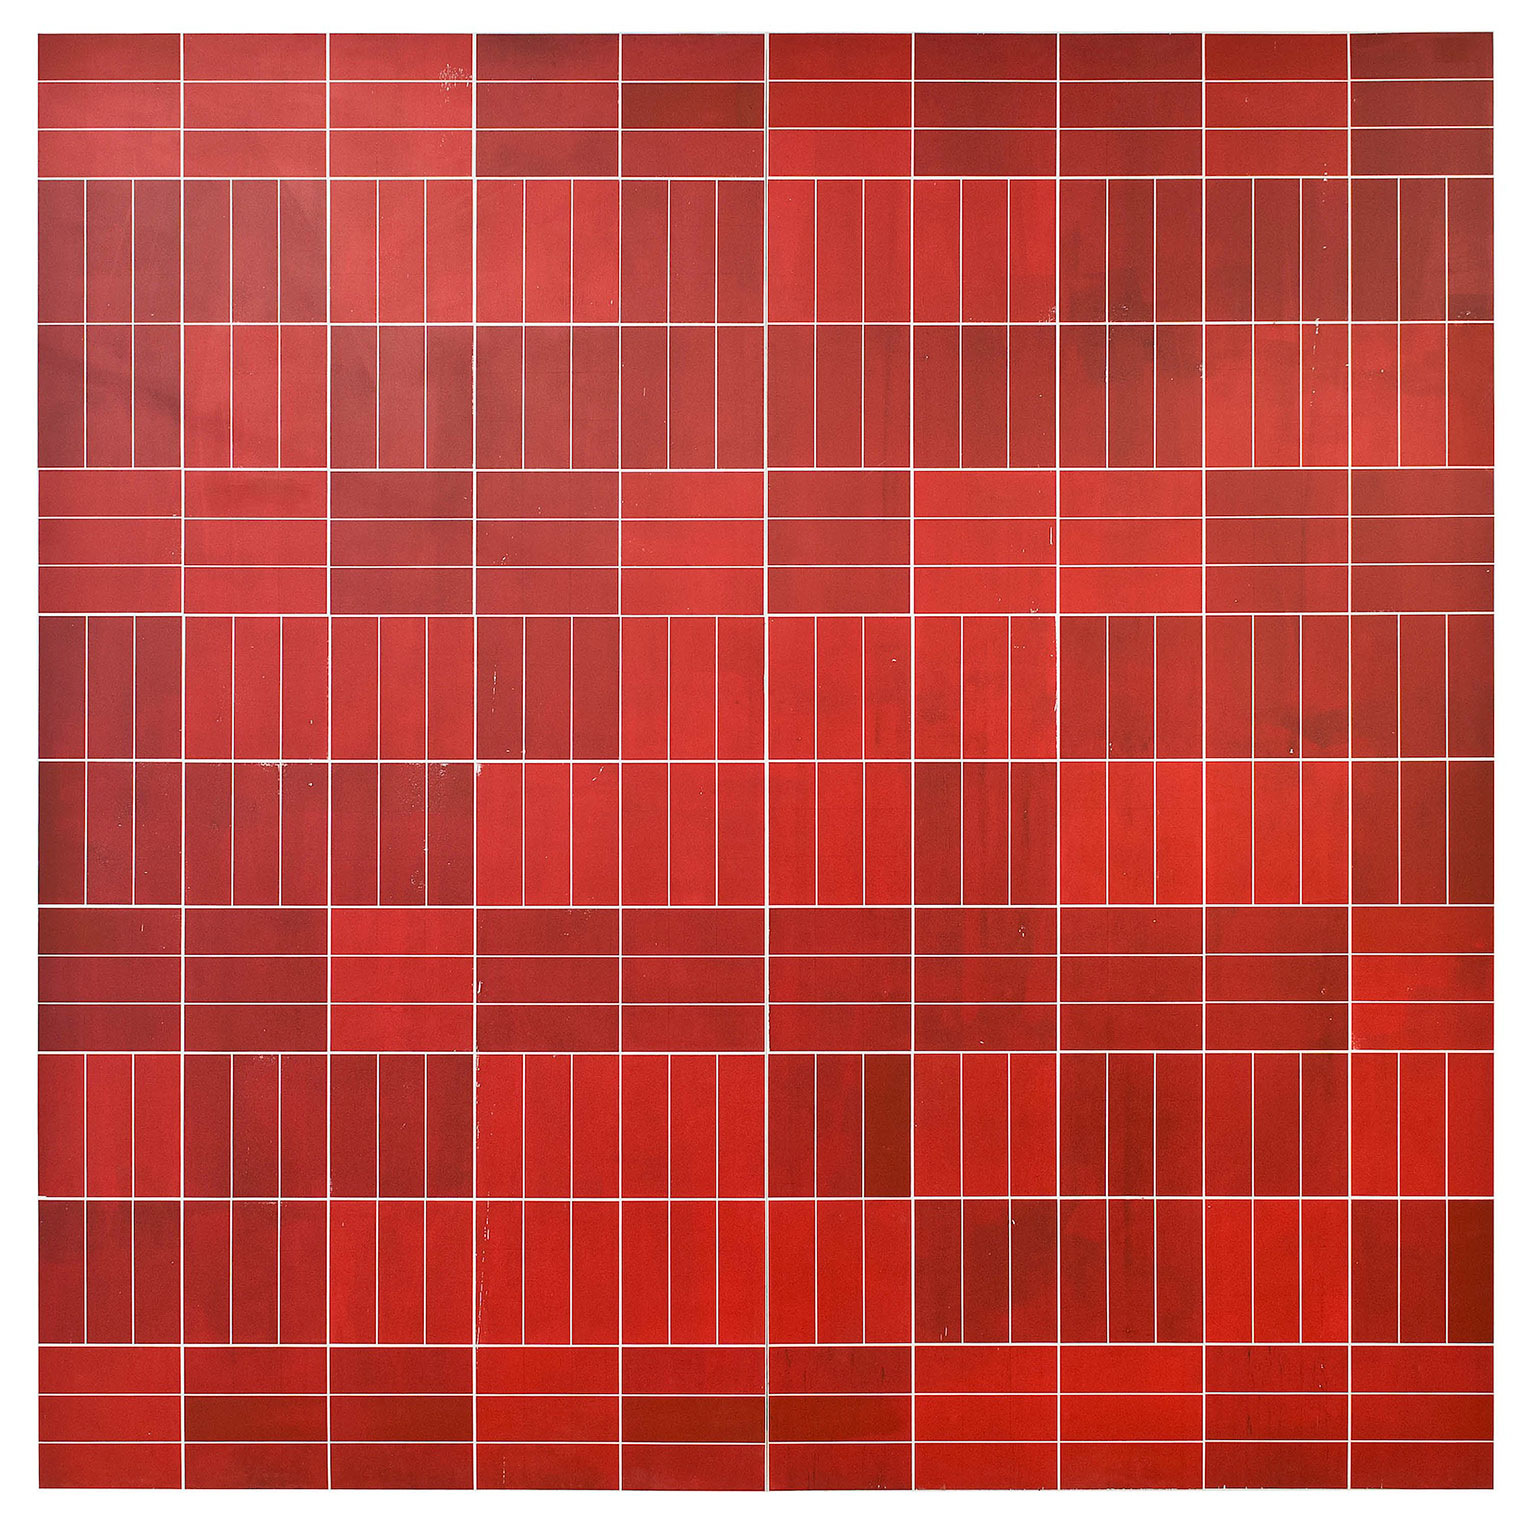 <b>Title: </b>Red Brick<br /><b>Year: </b>2013<br /><b>Medium: </b>Silkscreen and acrylic on wood<br /><b>Size: </b>244 x 244 cm